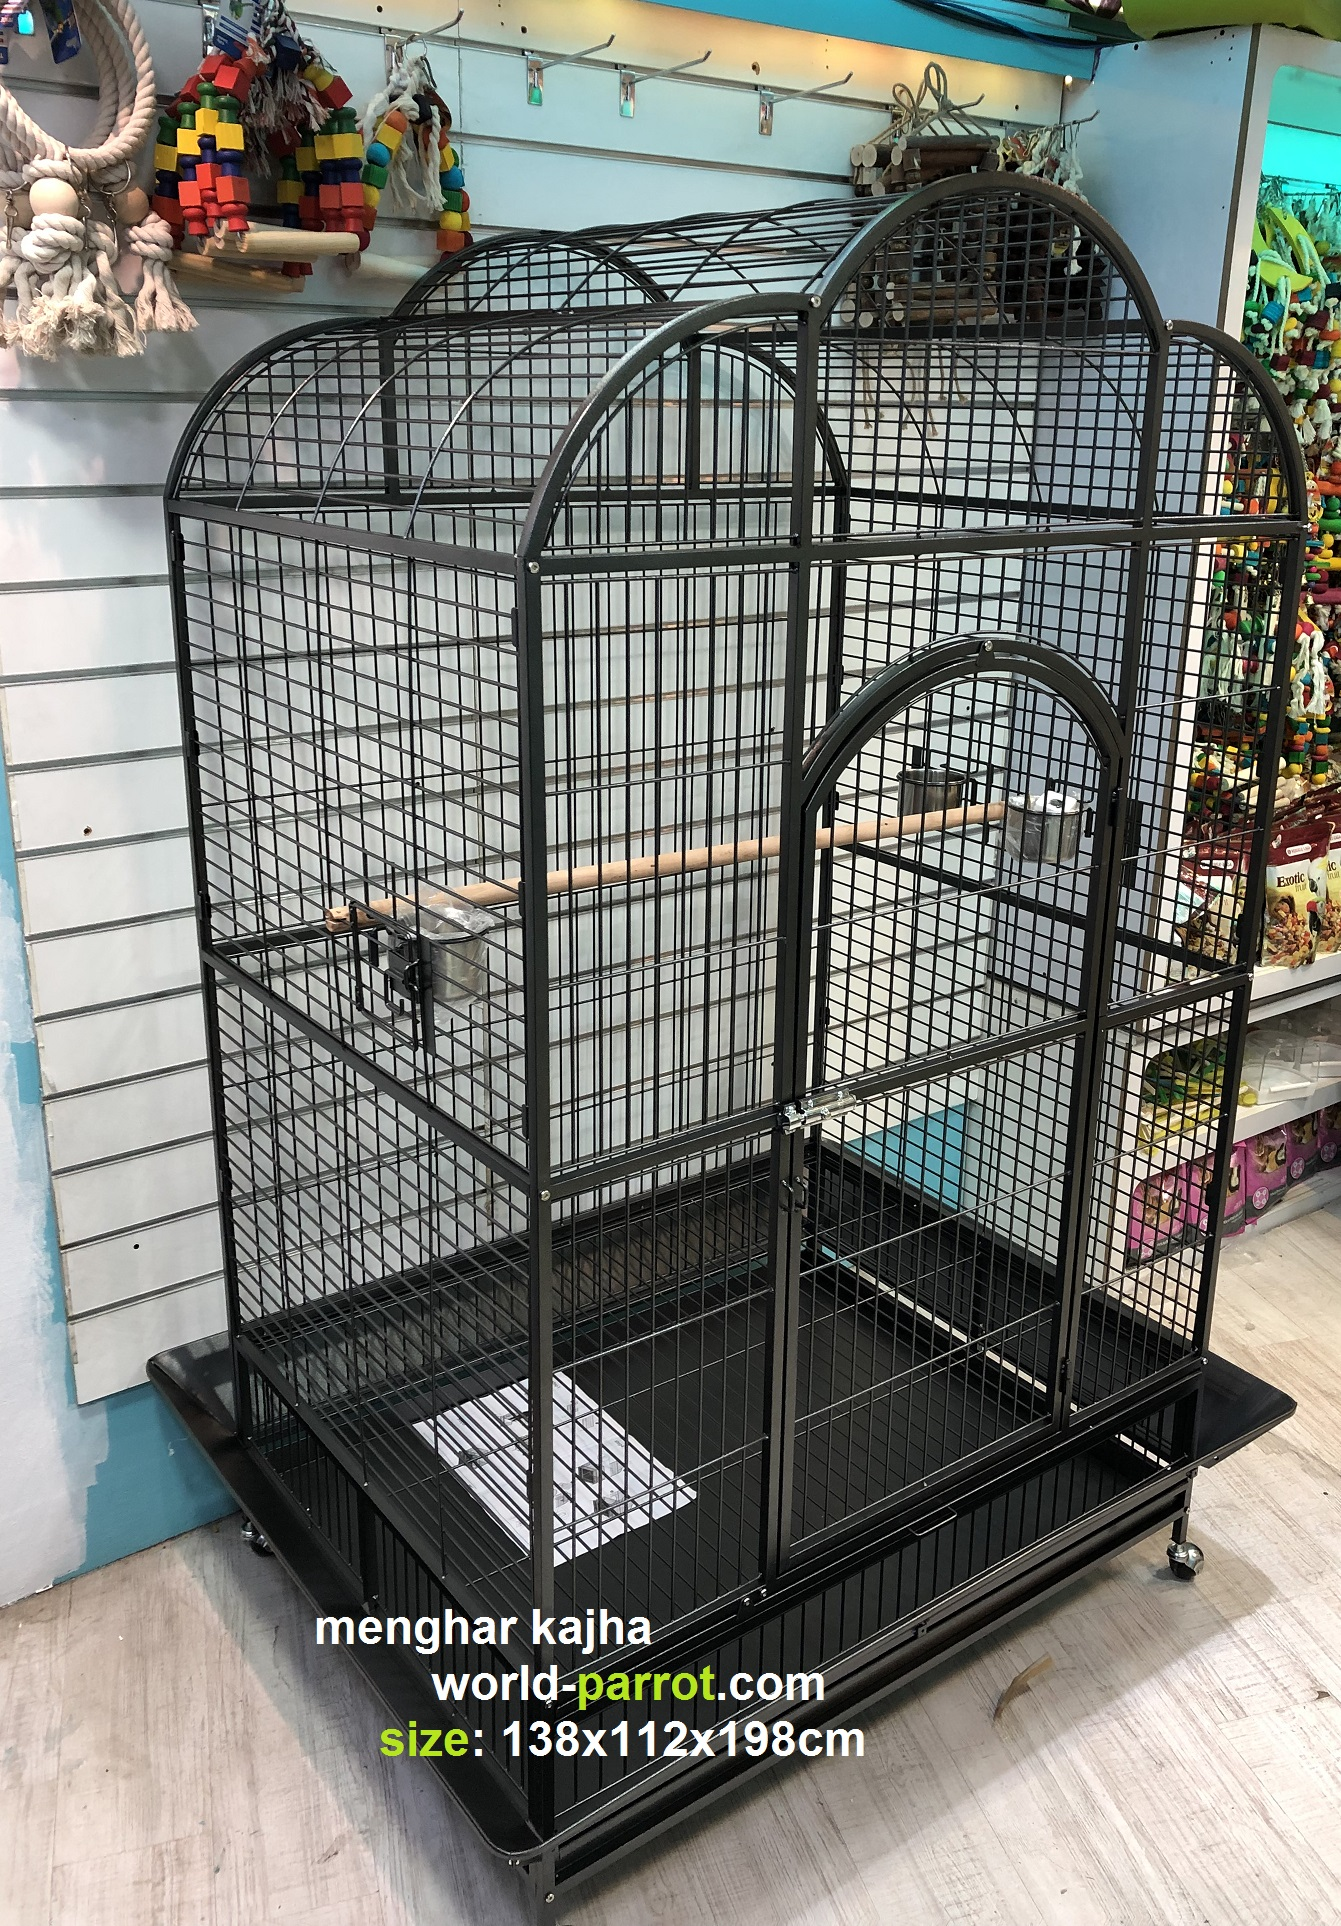 a25-a32-a-32-bird-cage-large-parrotcage